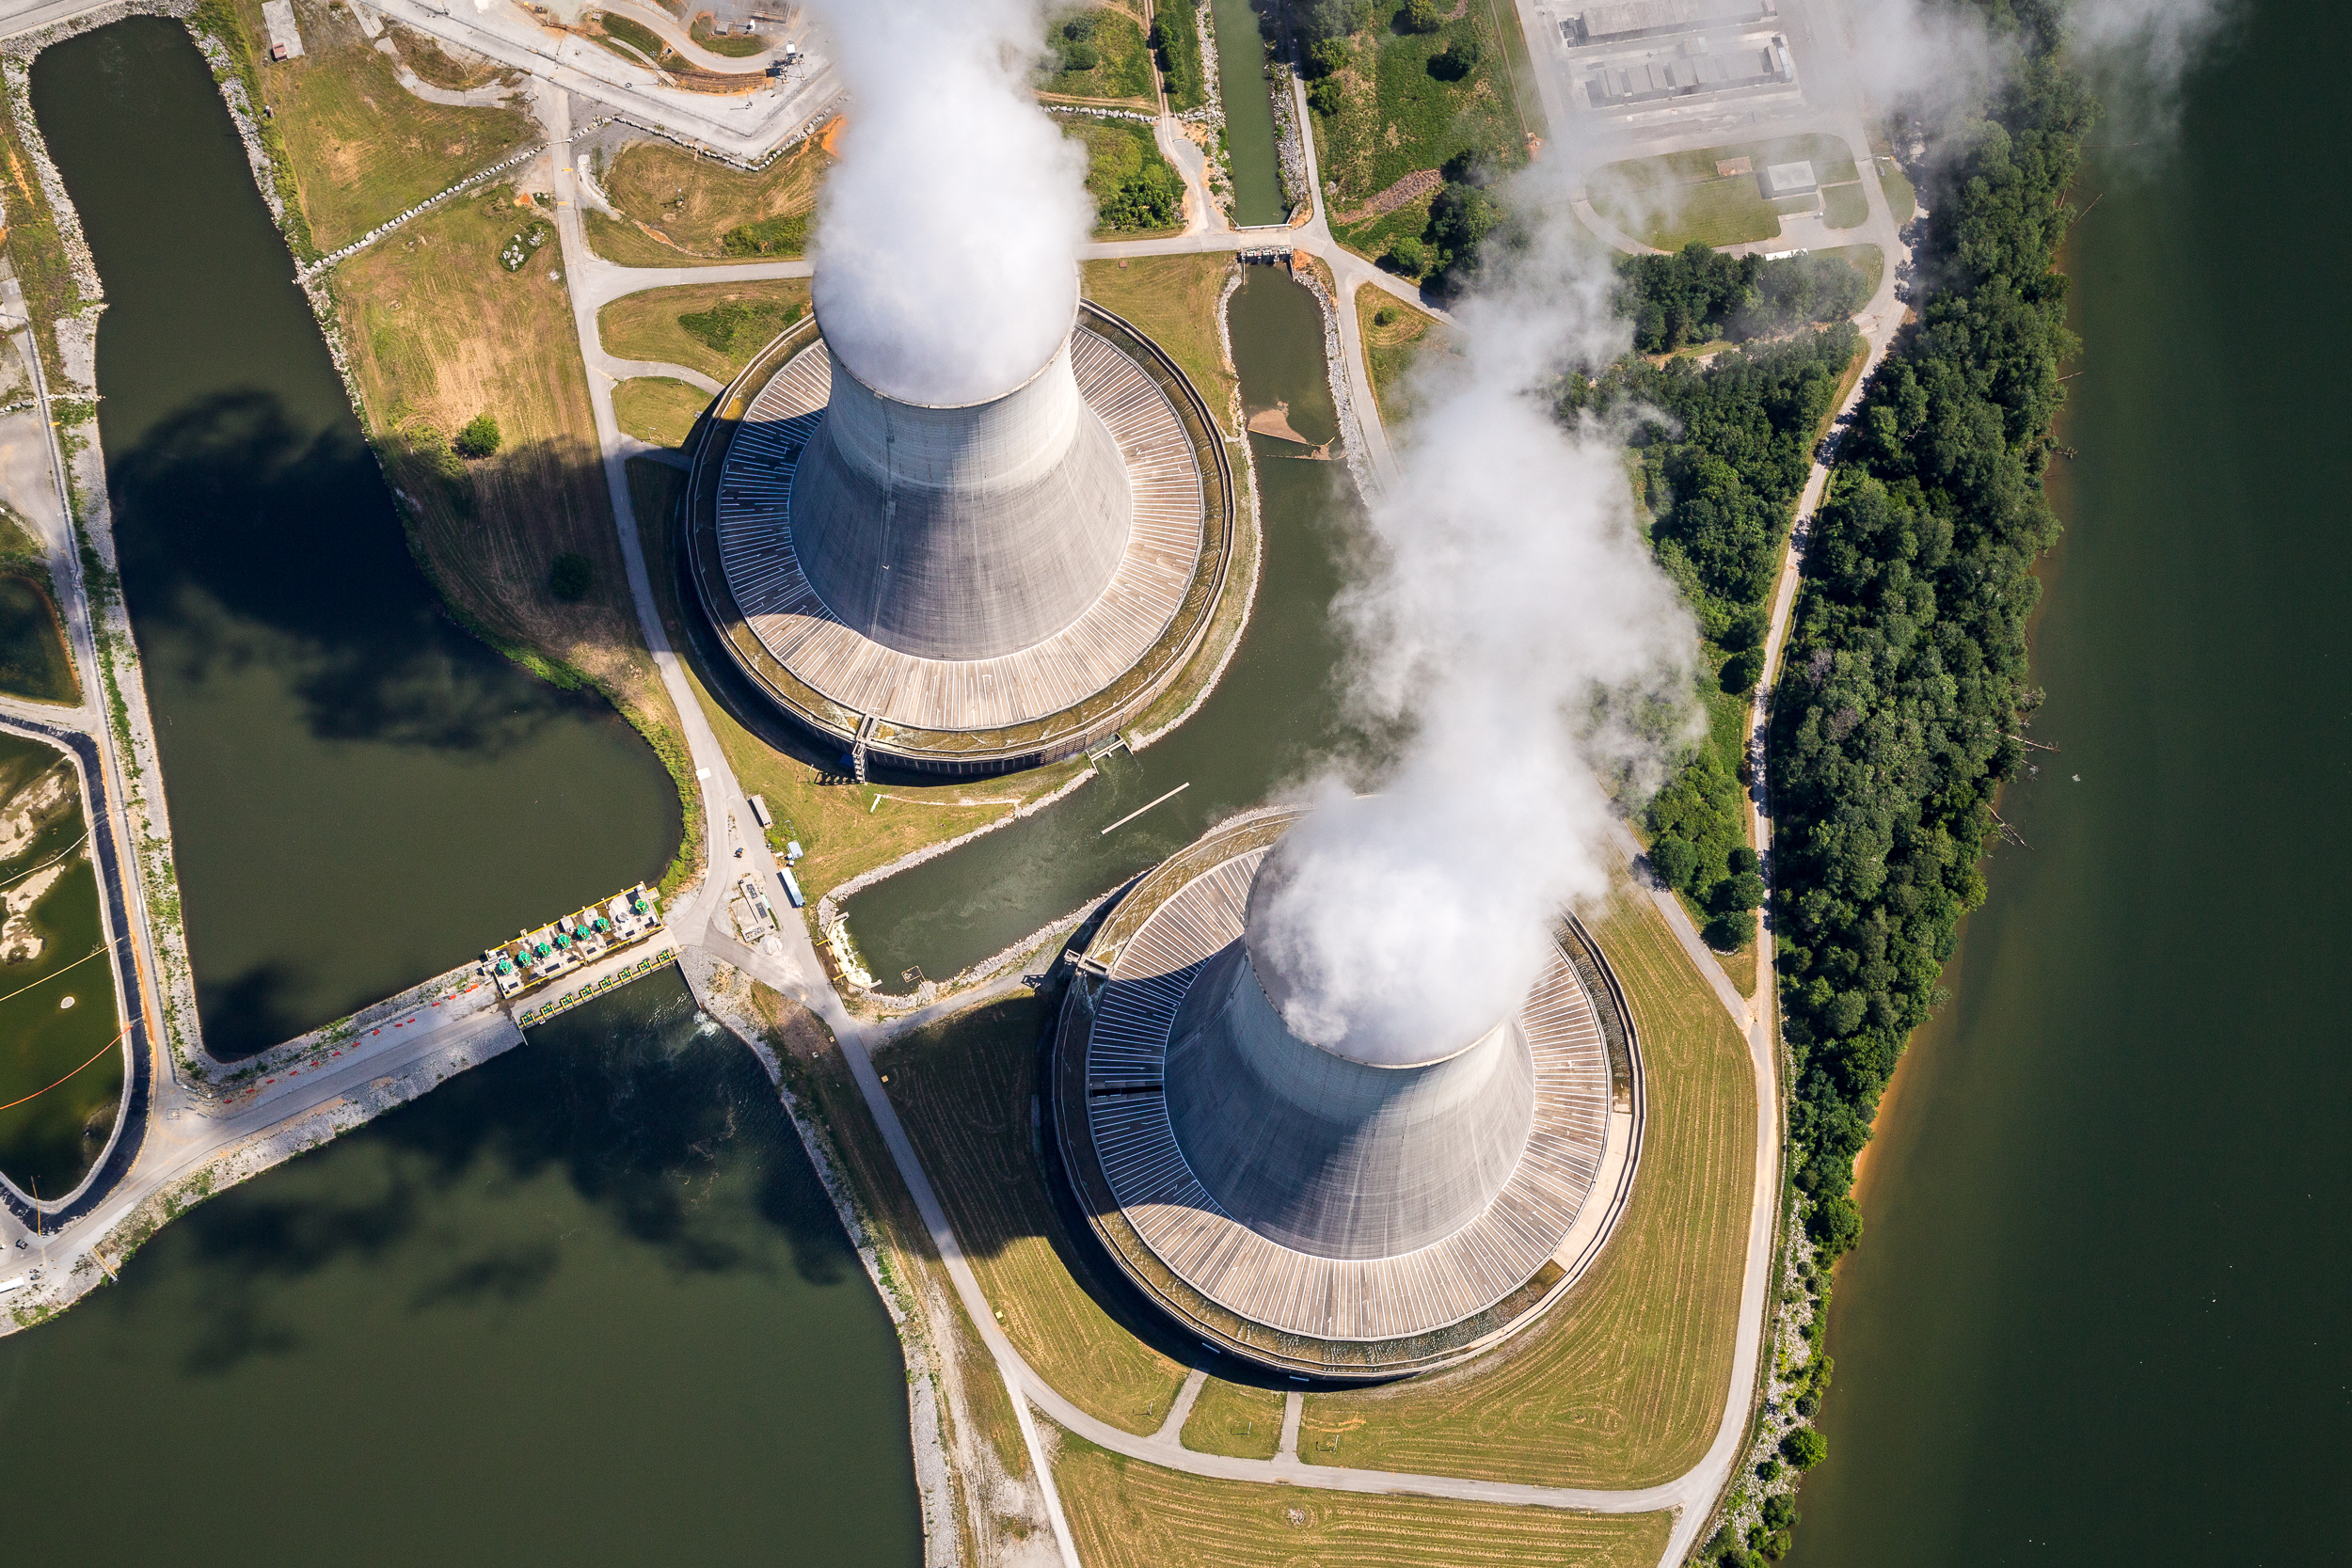 Sequoyah Nuclear Plant, Soddy Daisy, Tennessee.